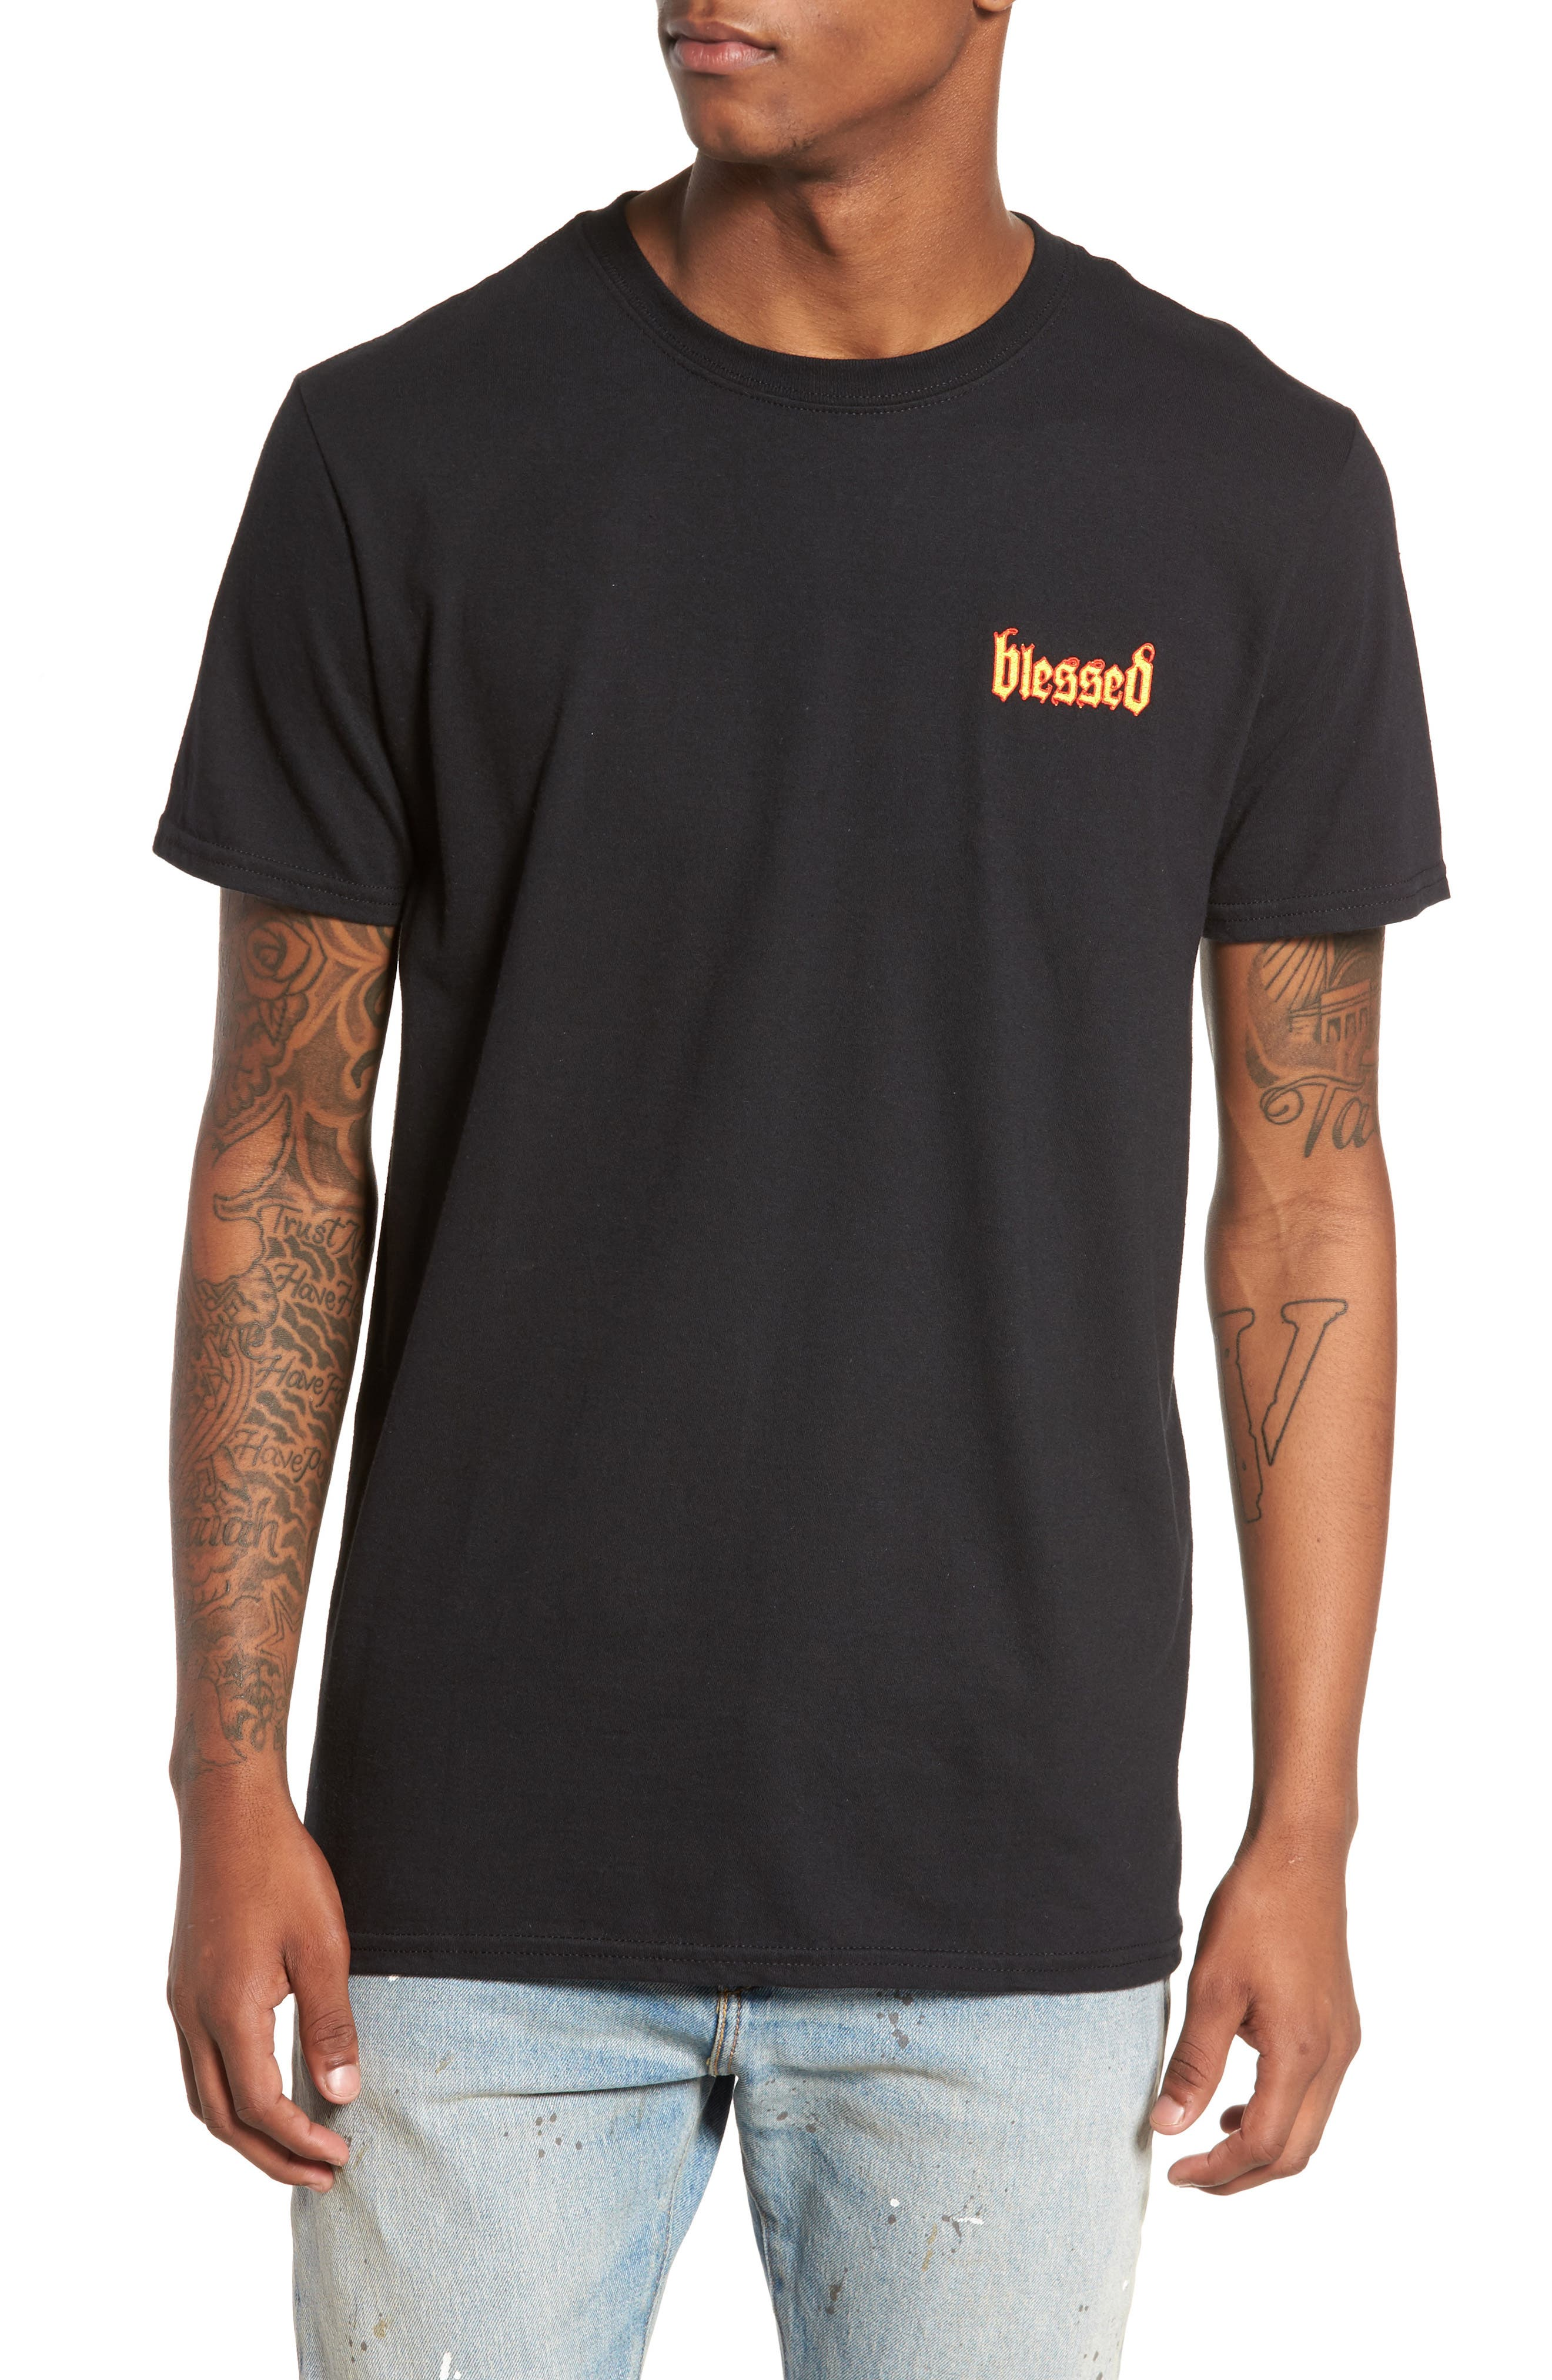 Blessed T-Shirt,                         Main,                         color, Black Blessed